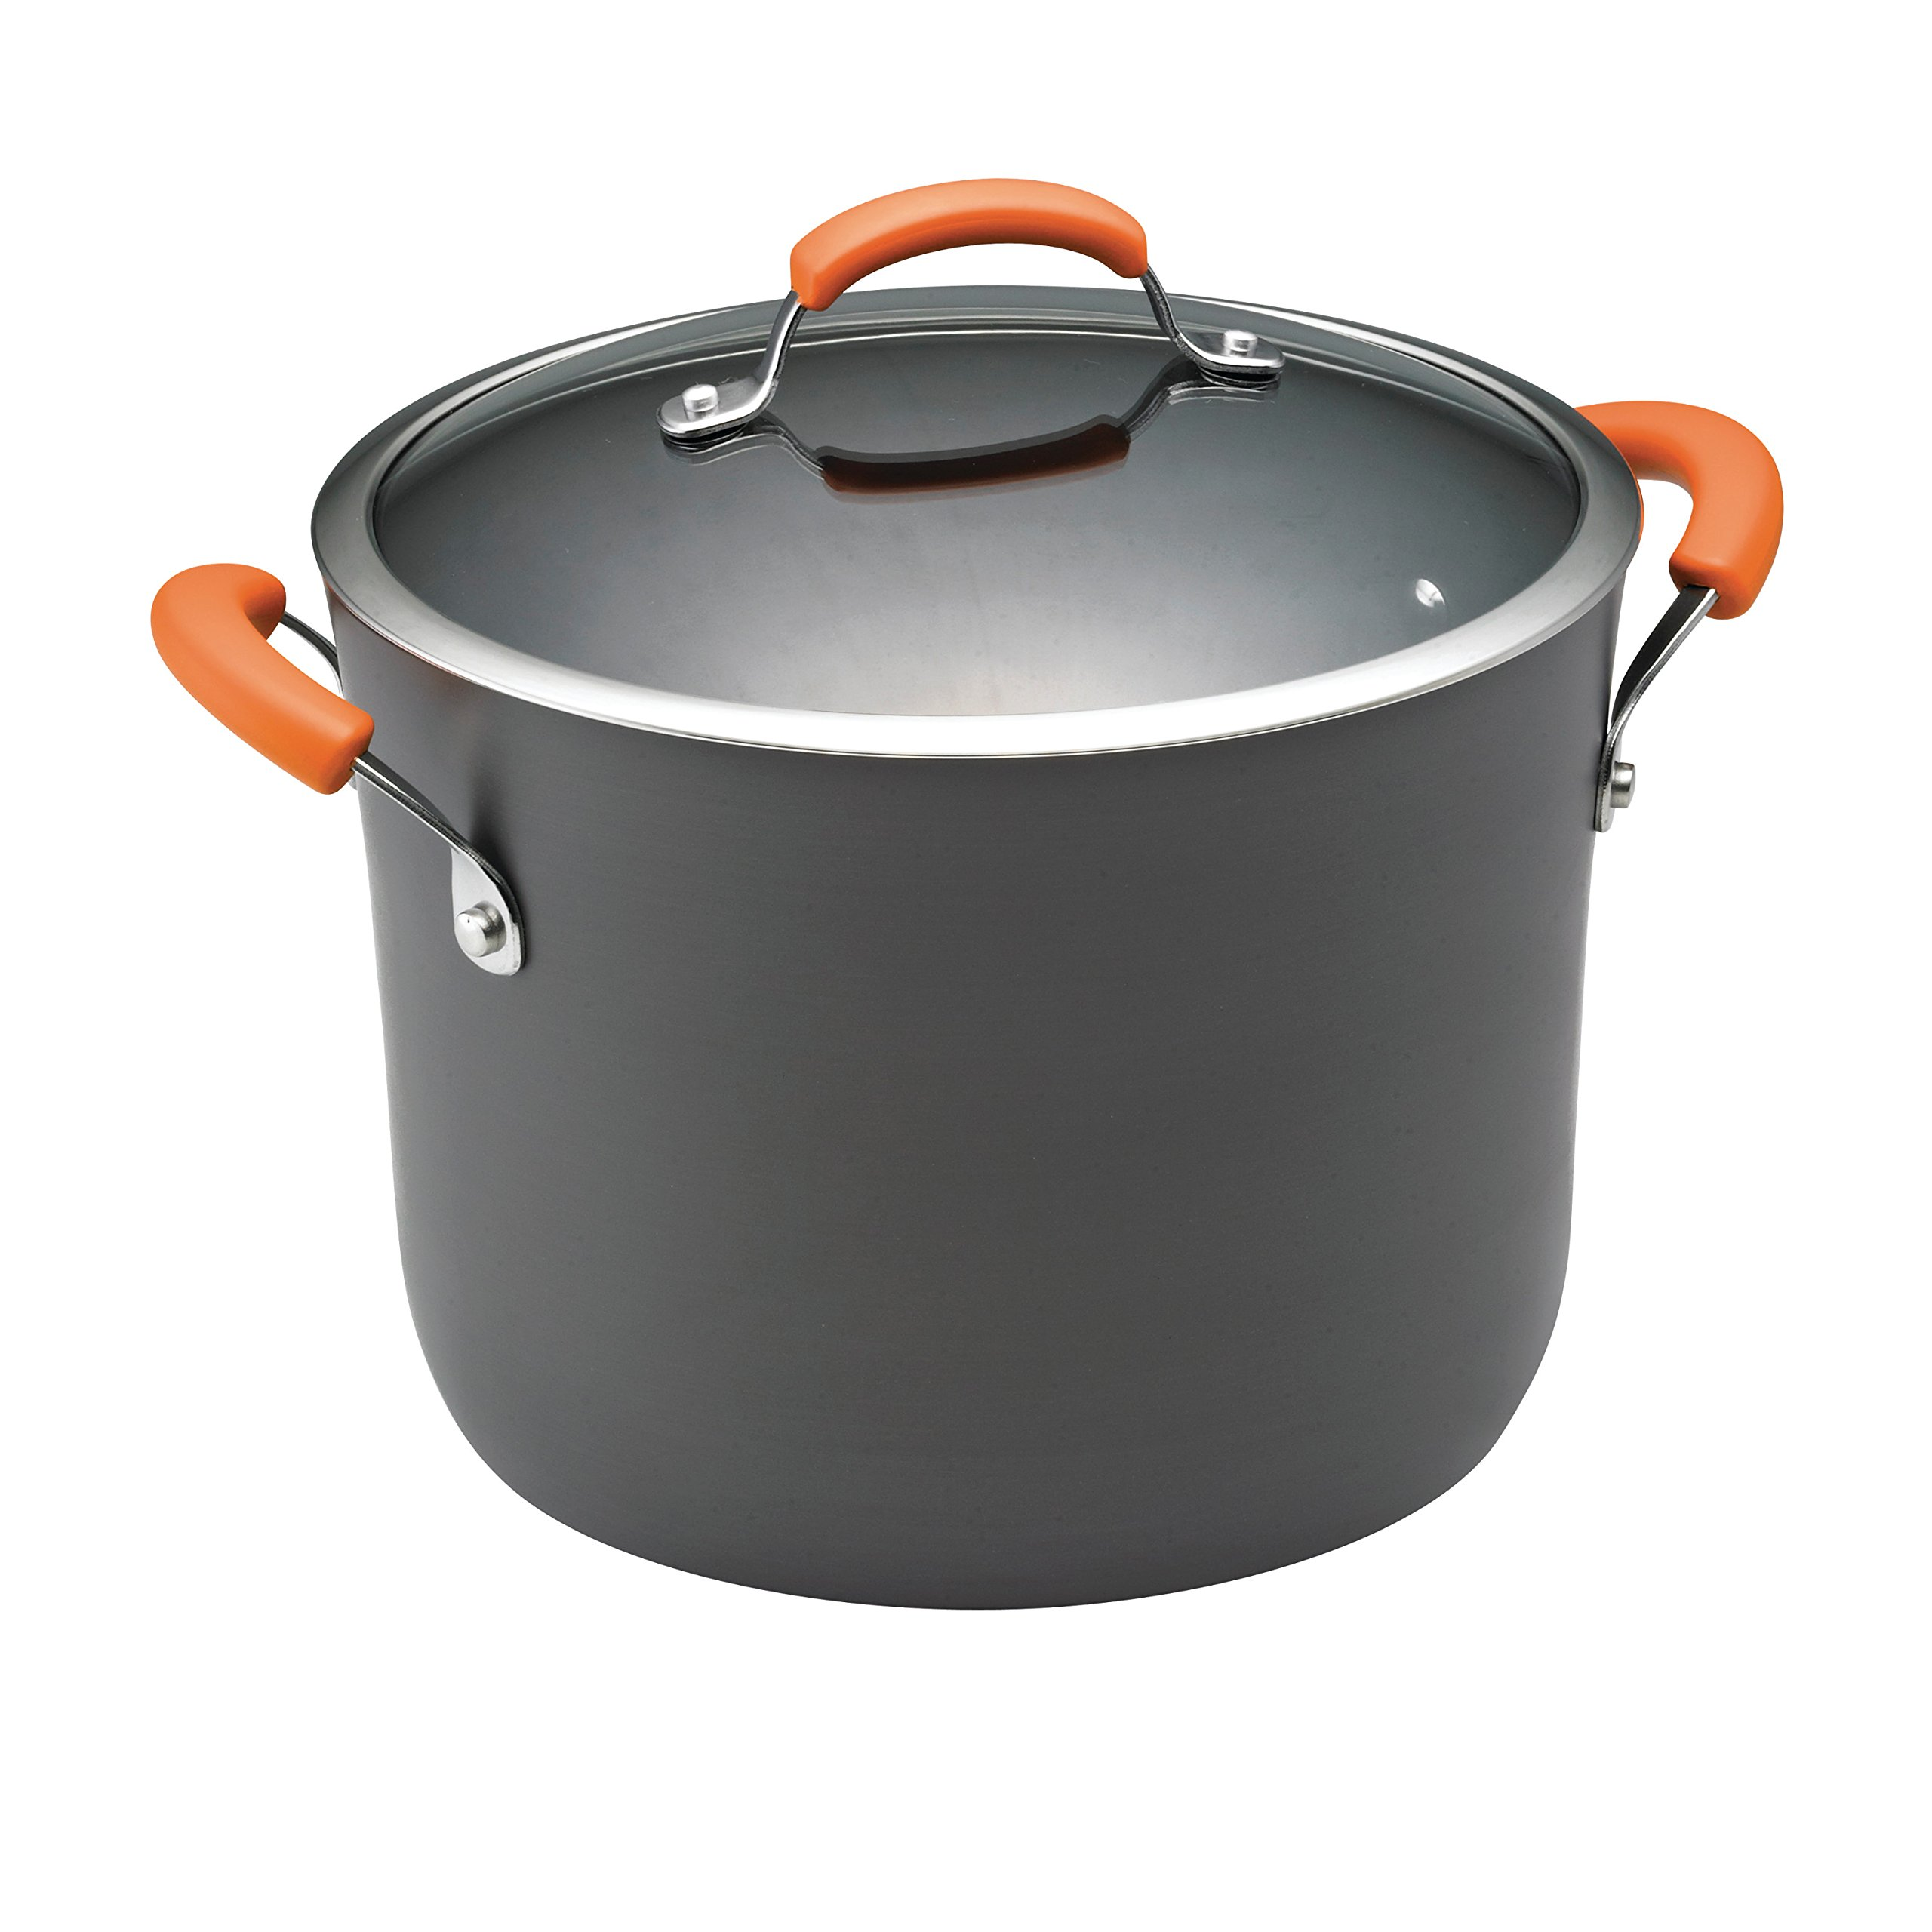 Rachael Ray Hard Anodized II Nonstick Dishwasher Safe 10-Quart Covered Stockpot, Orange